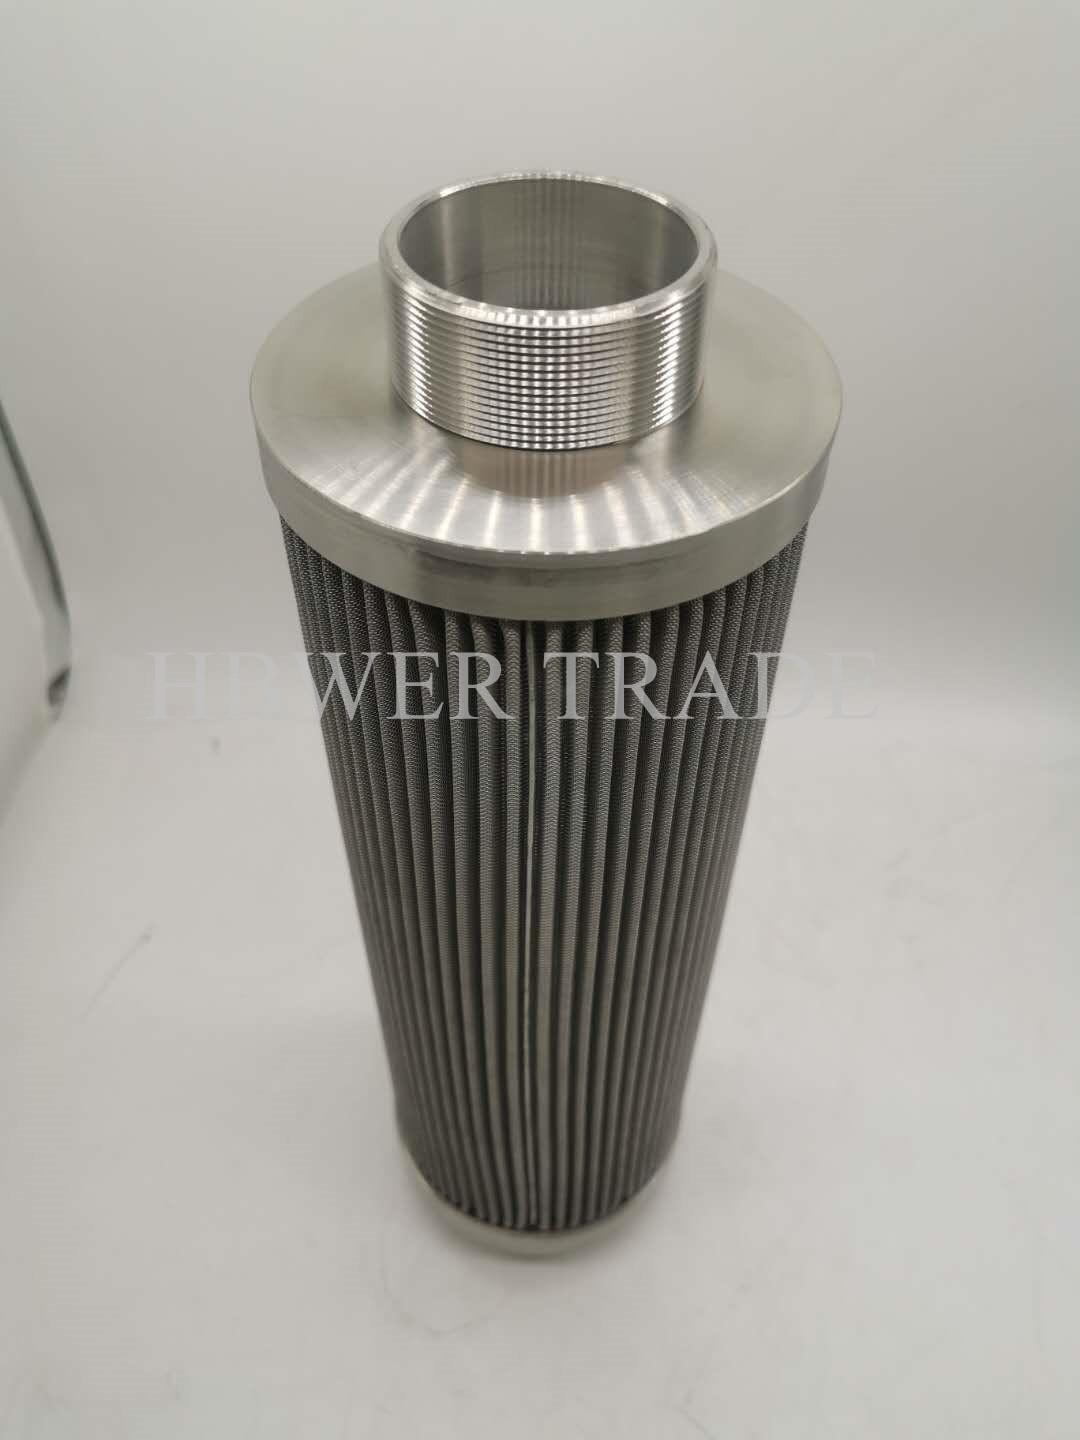 External threaded stainless steel filter element 316 304 material stainless stee 5